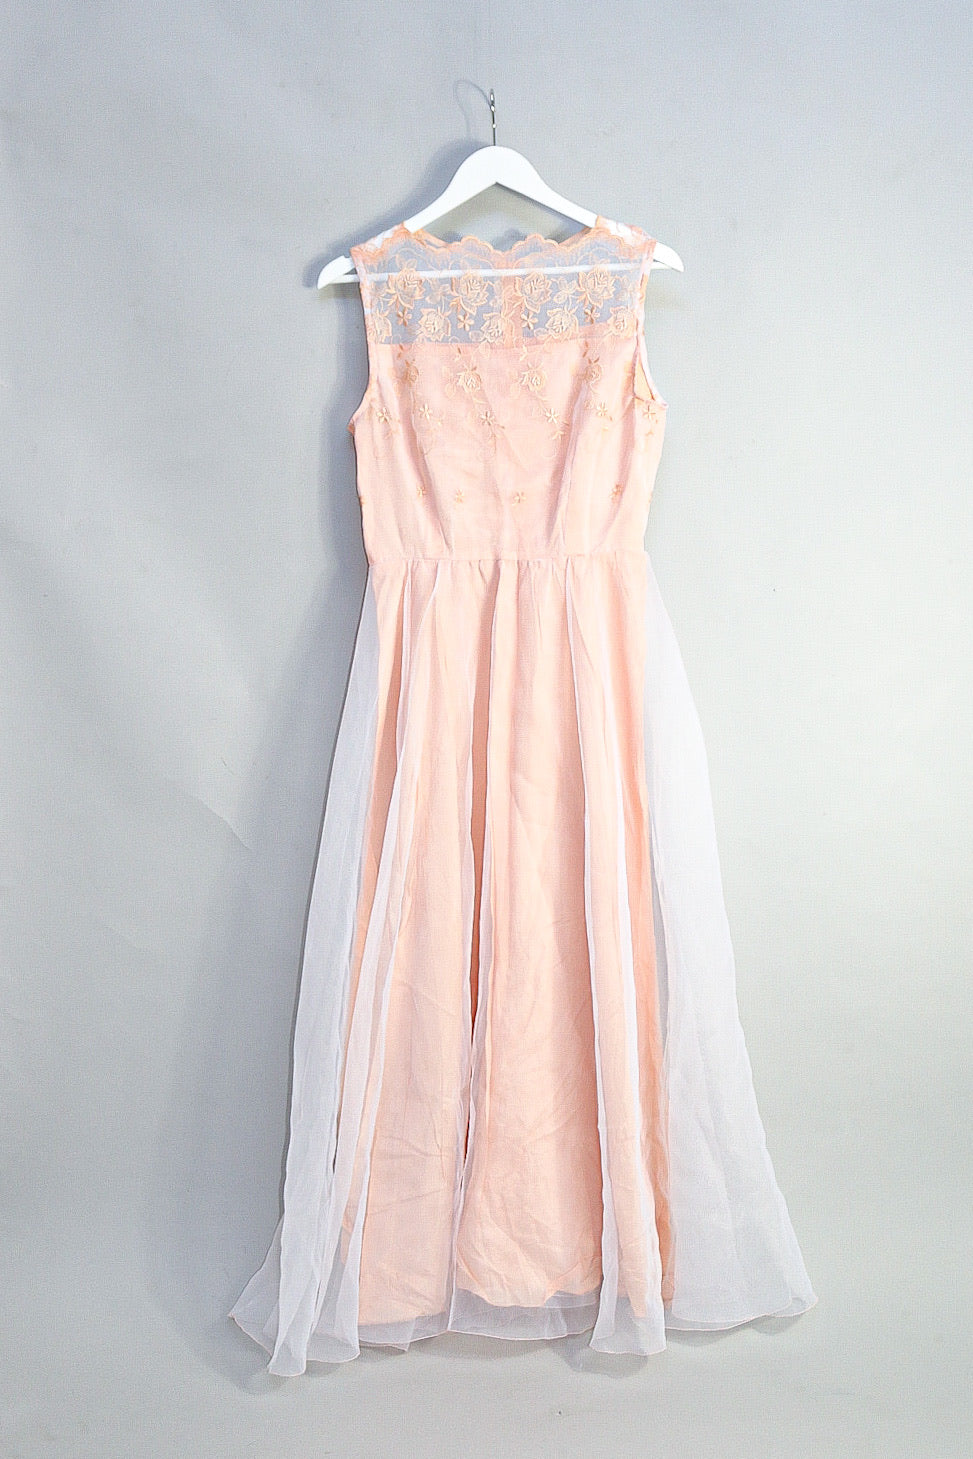 Vintage Empire Dress with Lace Detailing